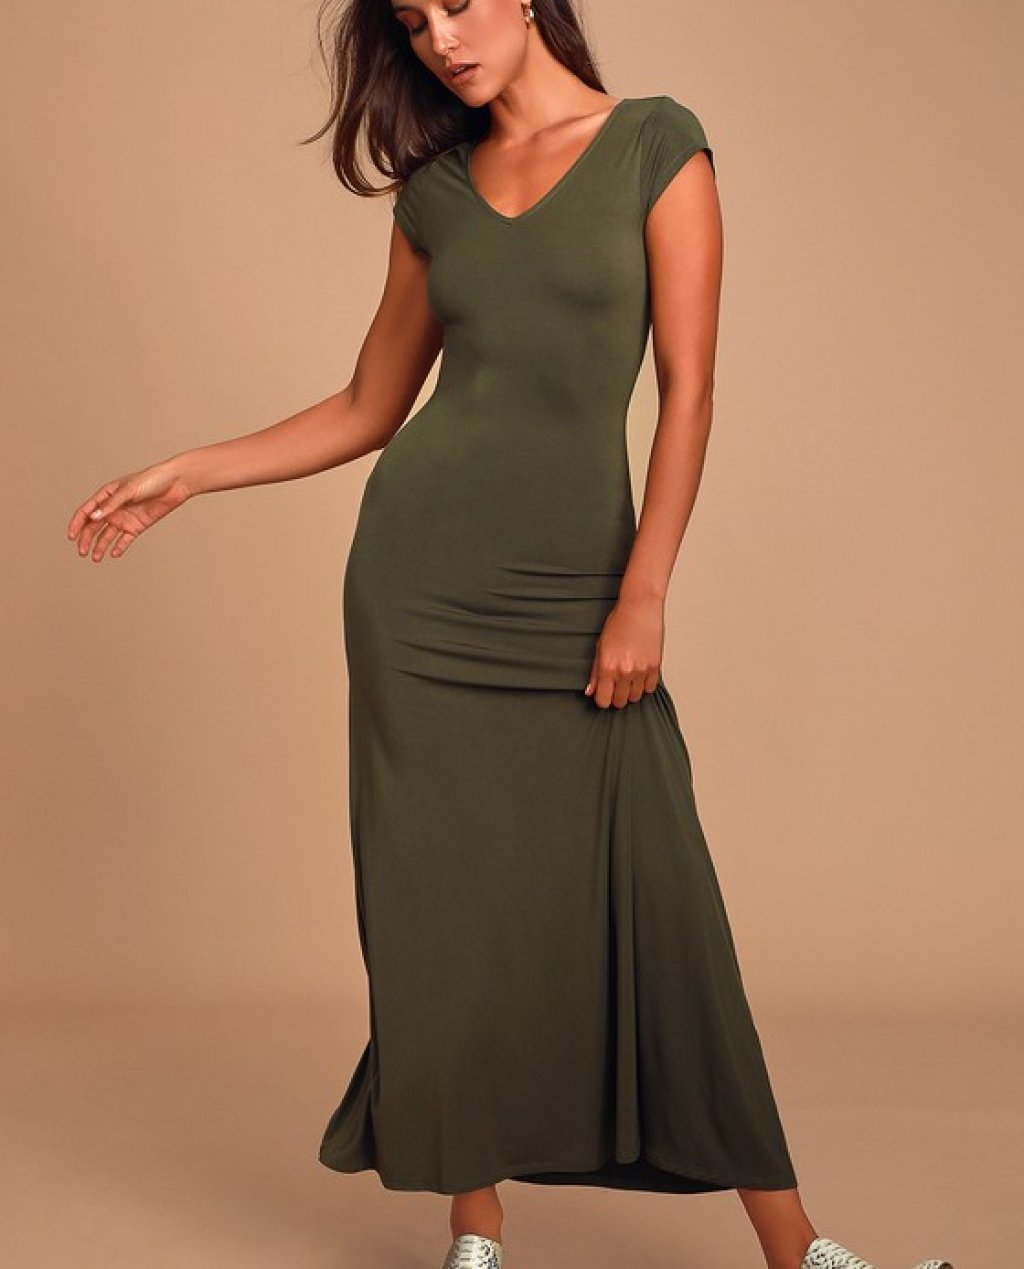 Siena Olive Green Short Sleeve Maxi Dress